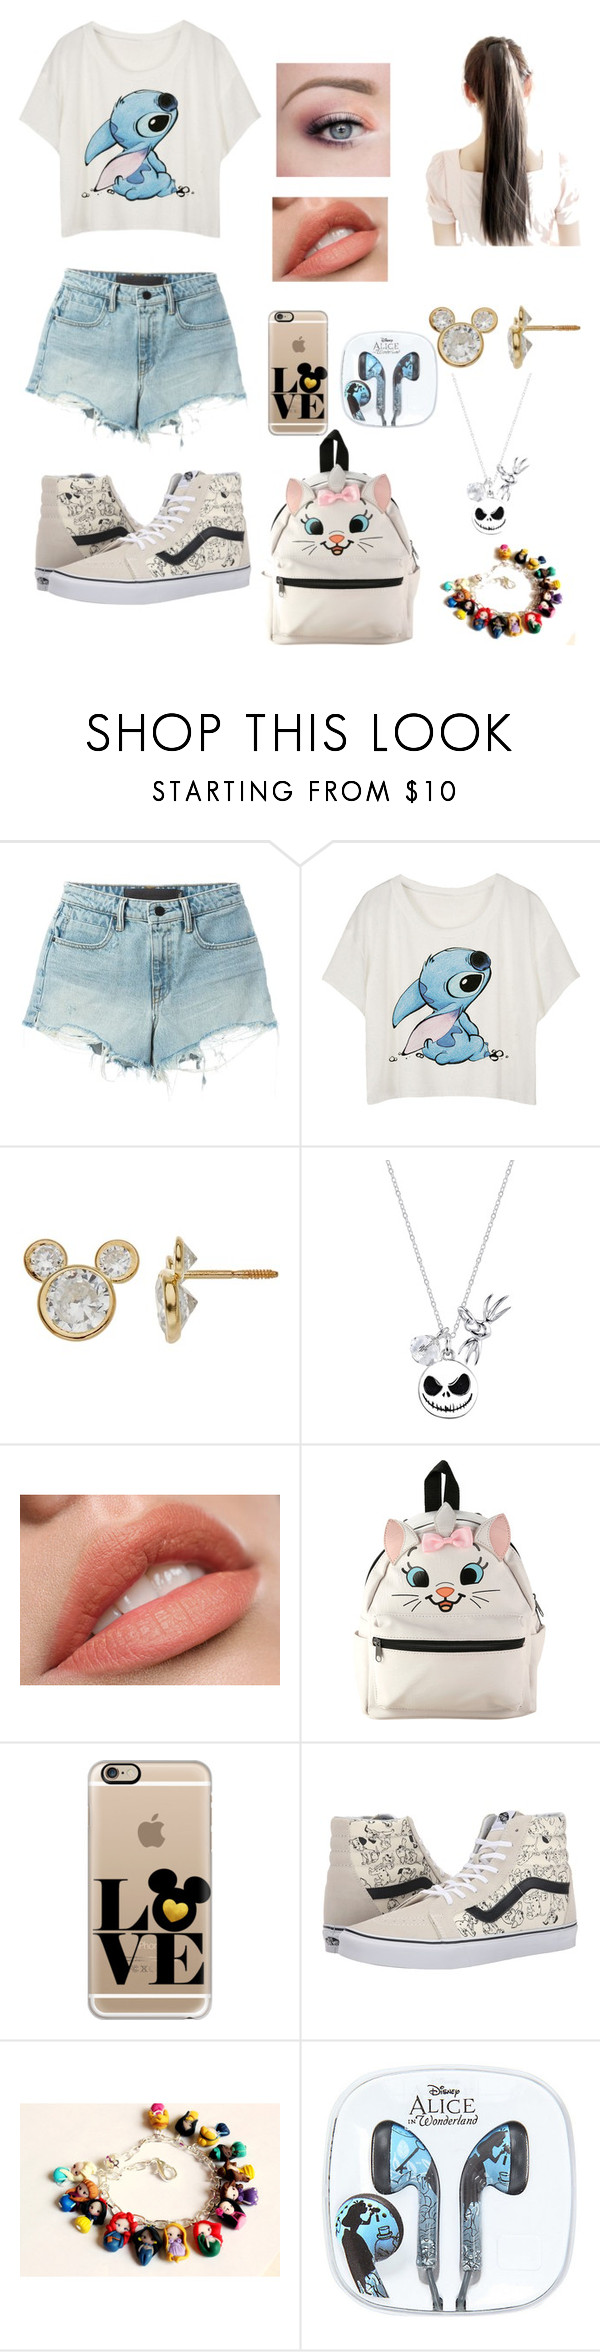 """""""Disney Inspired"""" by meloveyou91 ❤ liked on Polyvore featuring Alexander Wang, Disney, Casetify and Vans"""